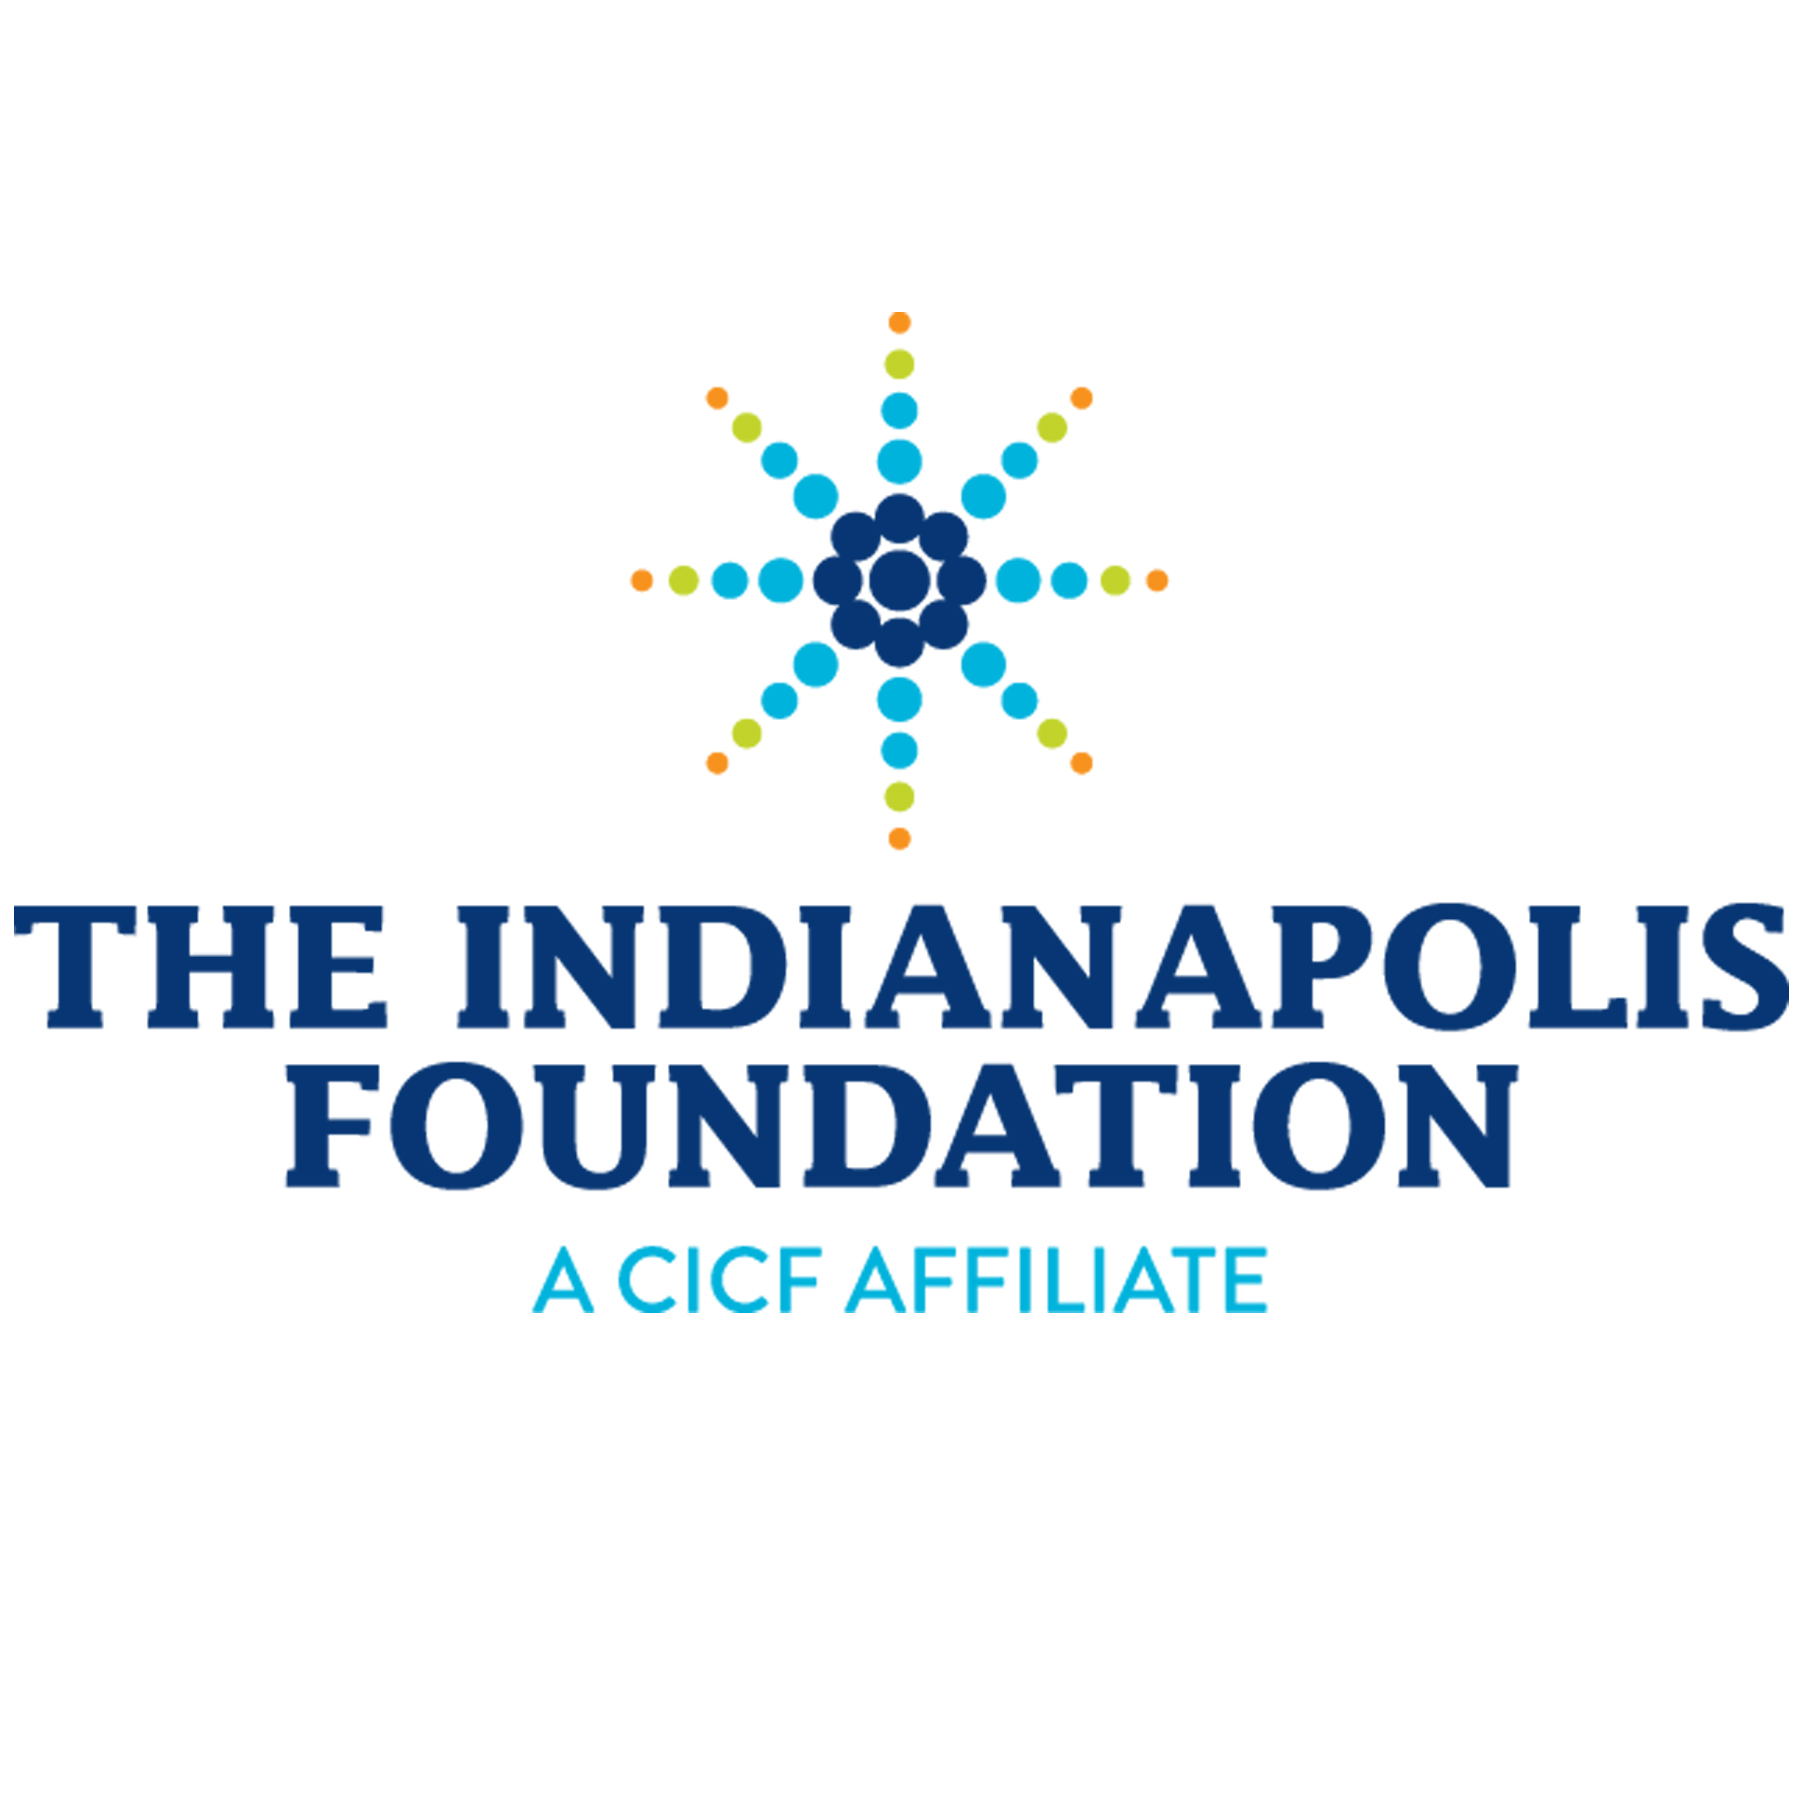 indianapolis foundation logo.jpg